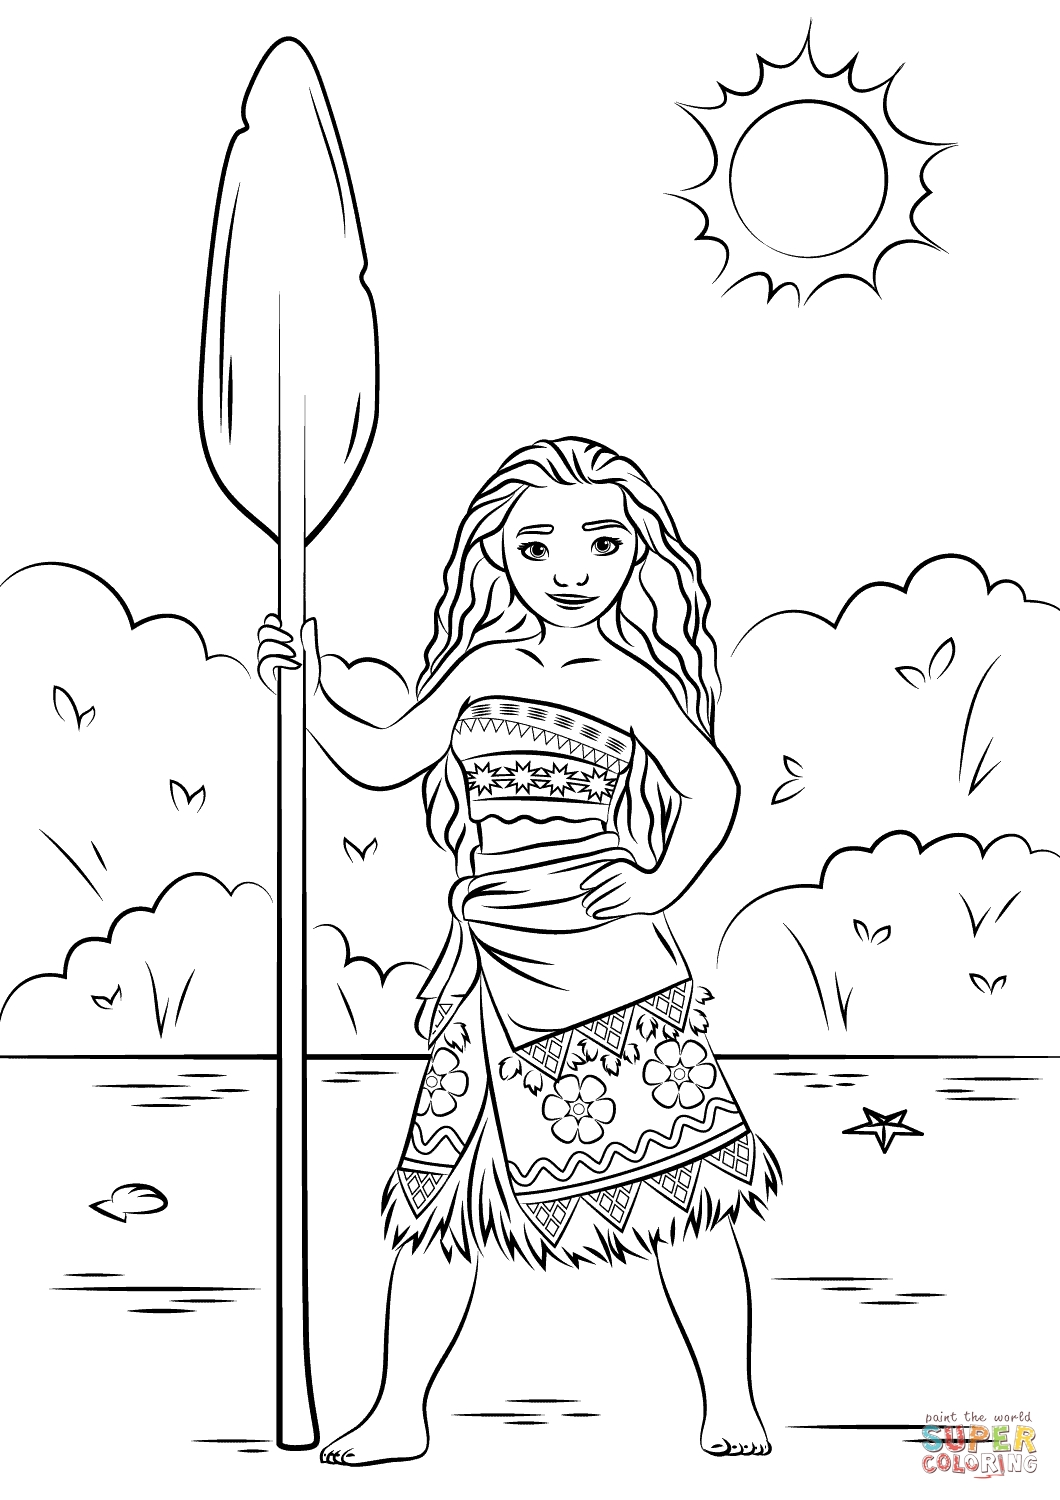 Moana Coloring Pages Free - Moana Free Colouring Pages